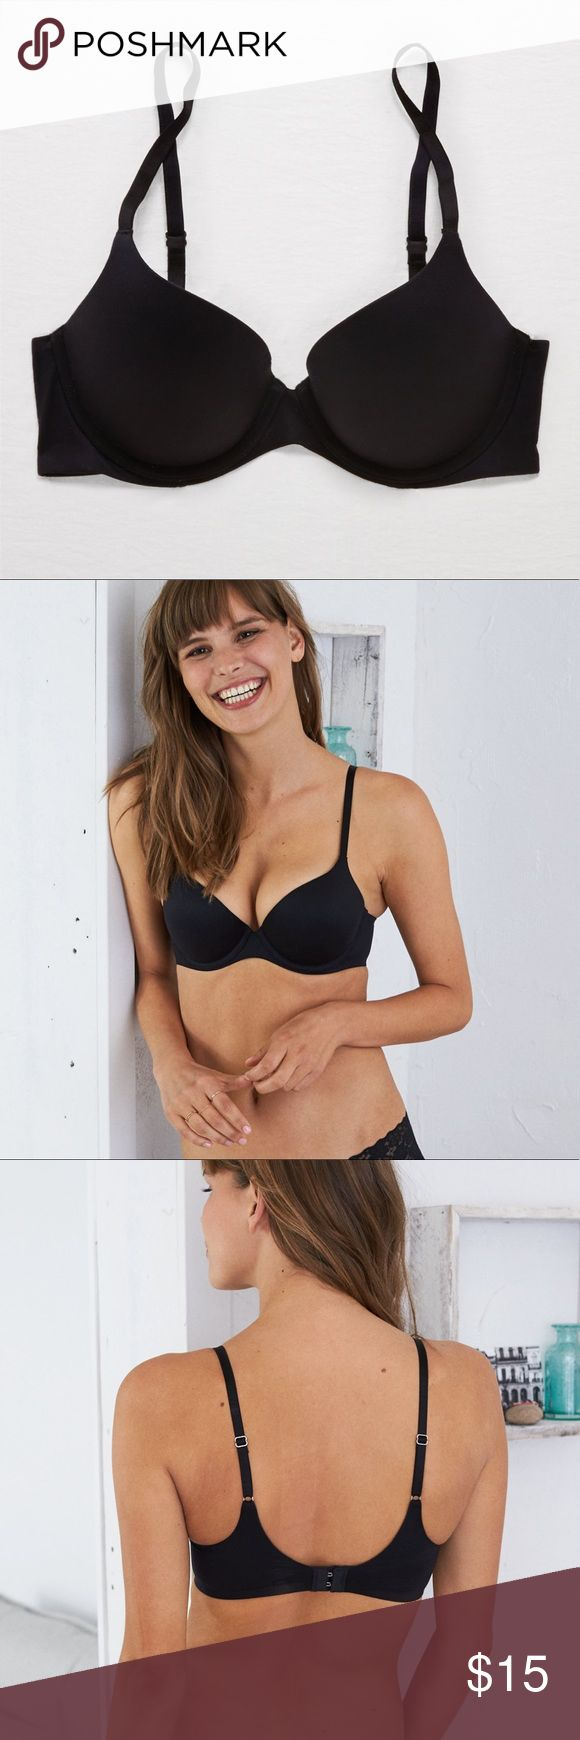 Aerie Sunnie Push up bra!  (Black) Also available in beige!  Has been worn and washed, always hang dried.  Still in great condition.  Size 30D, medium push up.  Make offers!  Tags: nude beige tan brown perky premier small medium 32c XS s aerie American eagle Harper aerie Intimates & Sleepwear Bras